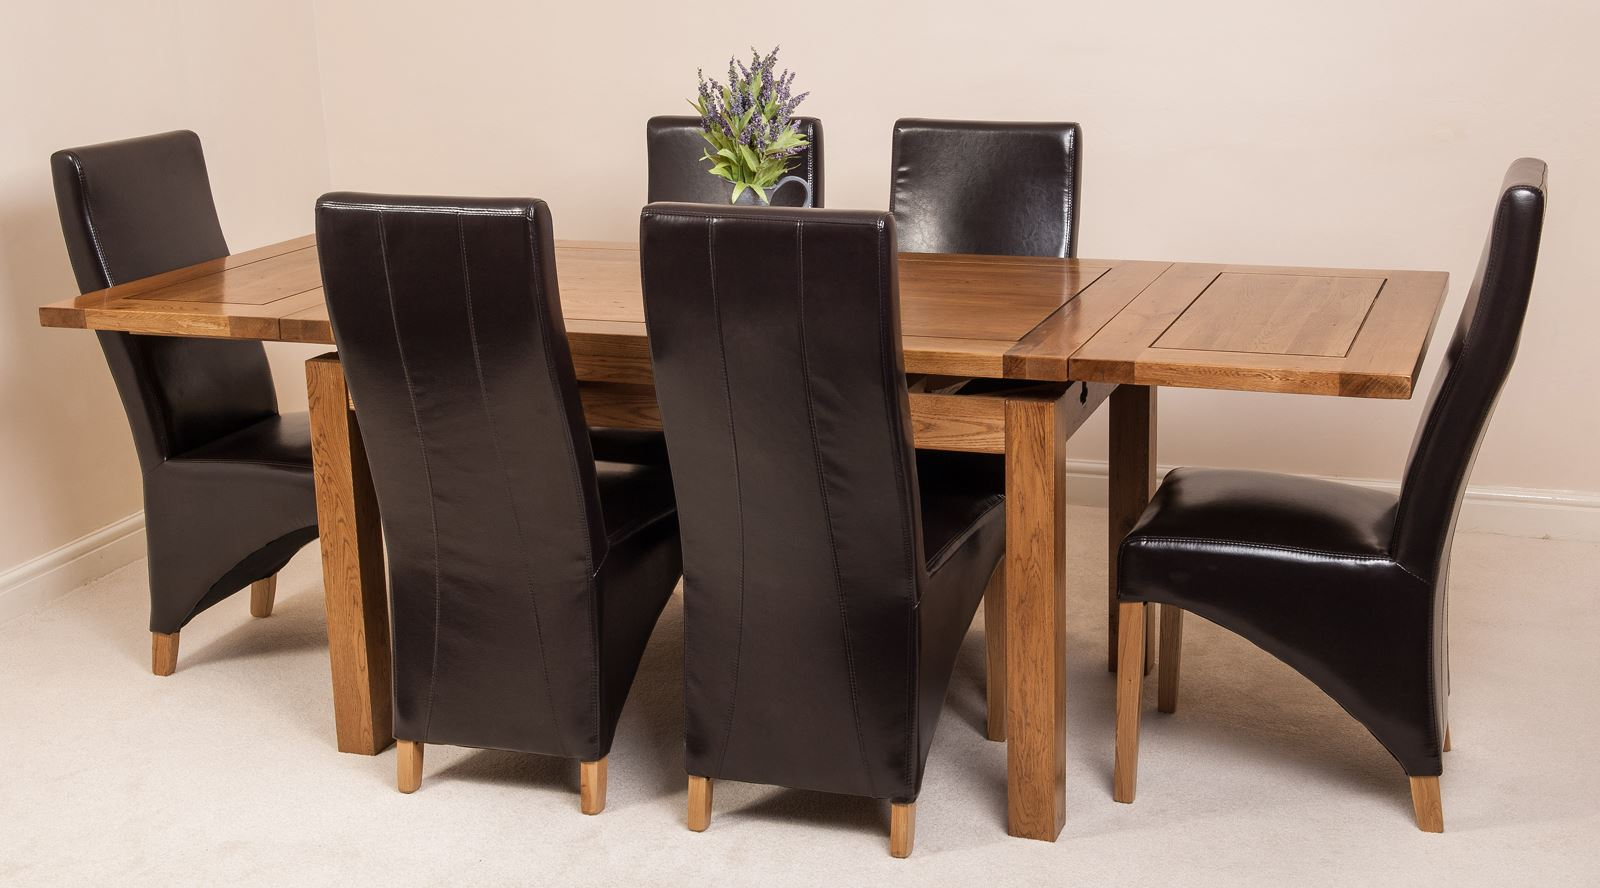 oak farmhouse chairs chair covers on wish rustic solid 160cm extending dining table